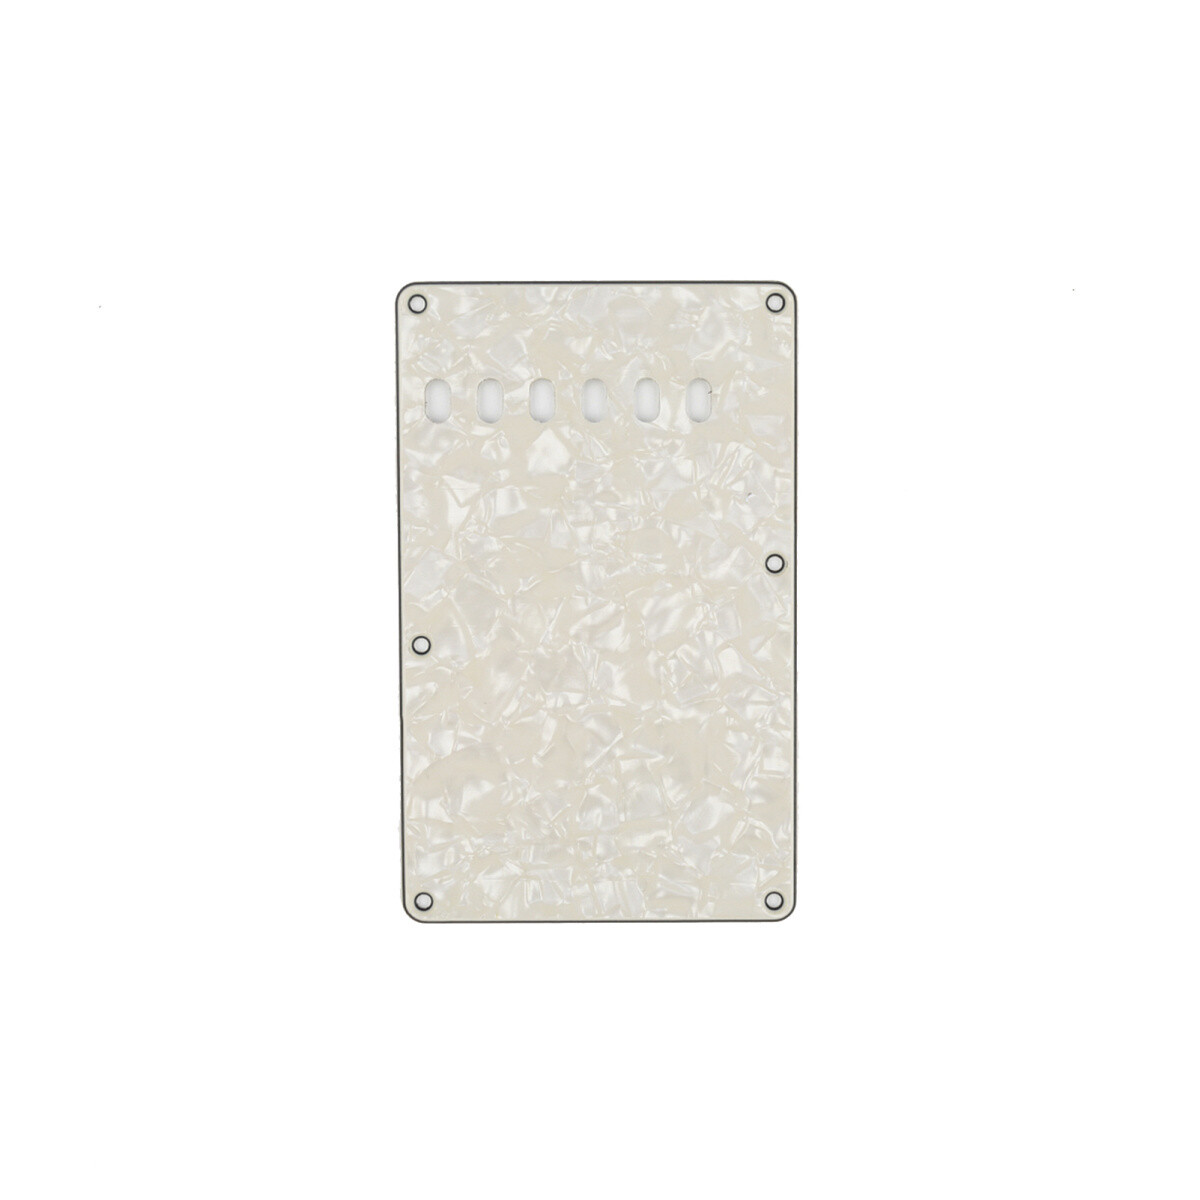 Brio Aged White Pearl Vintage Style Back Plate Tremolo Cover 4 ply - US/Mexican Fender®Strat® Fit